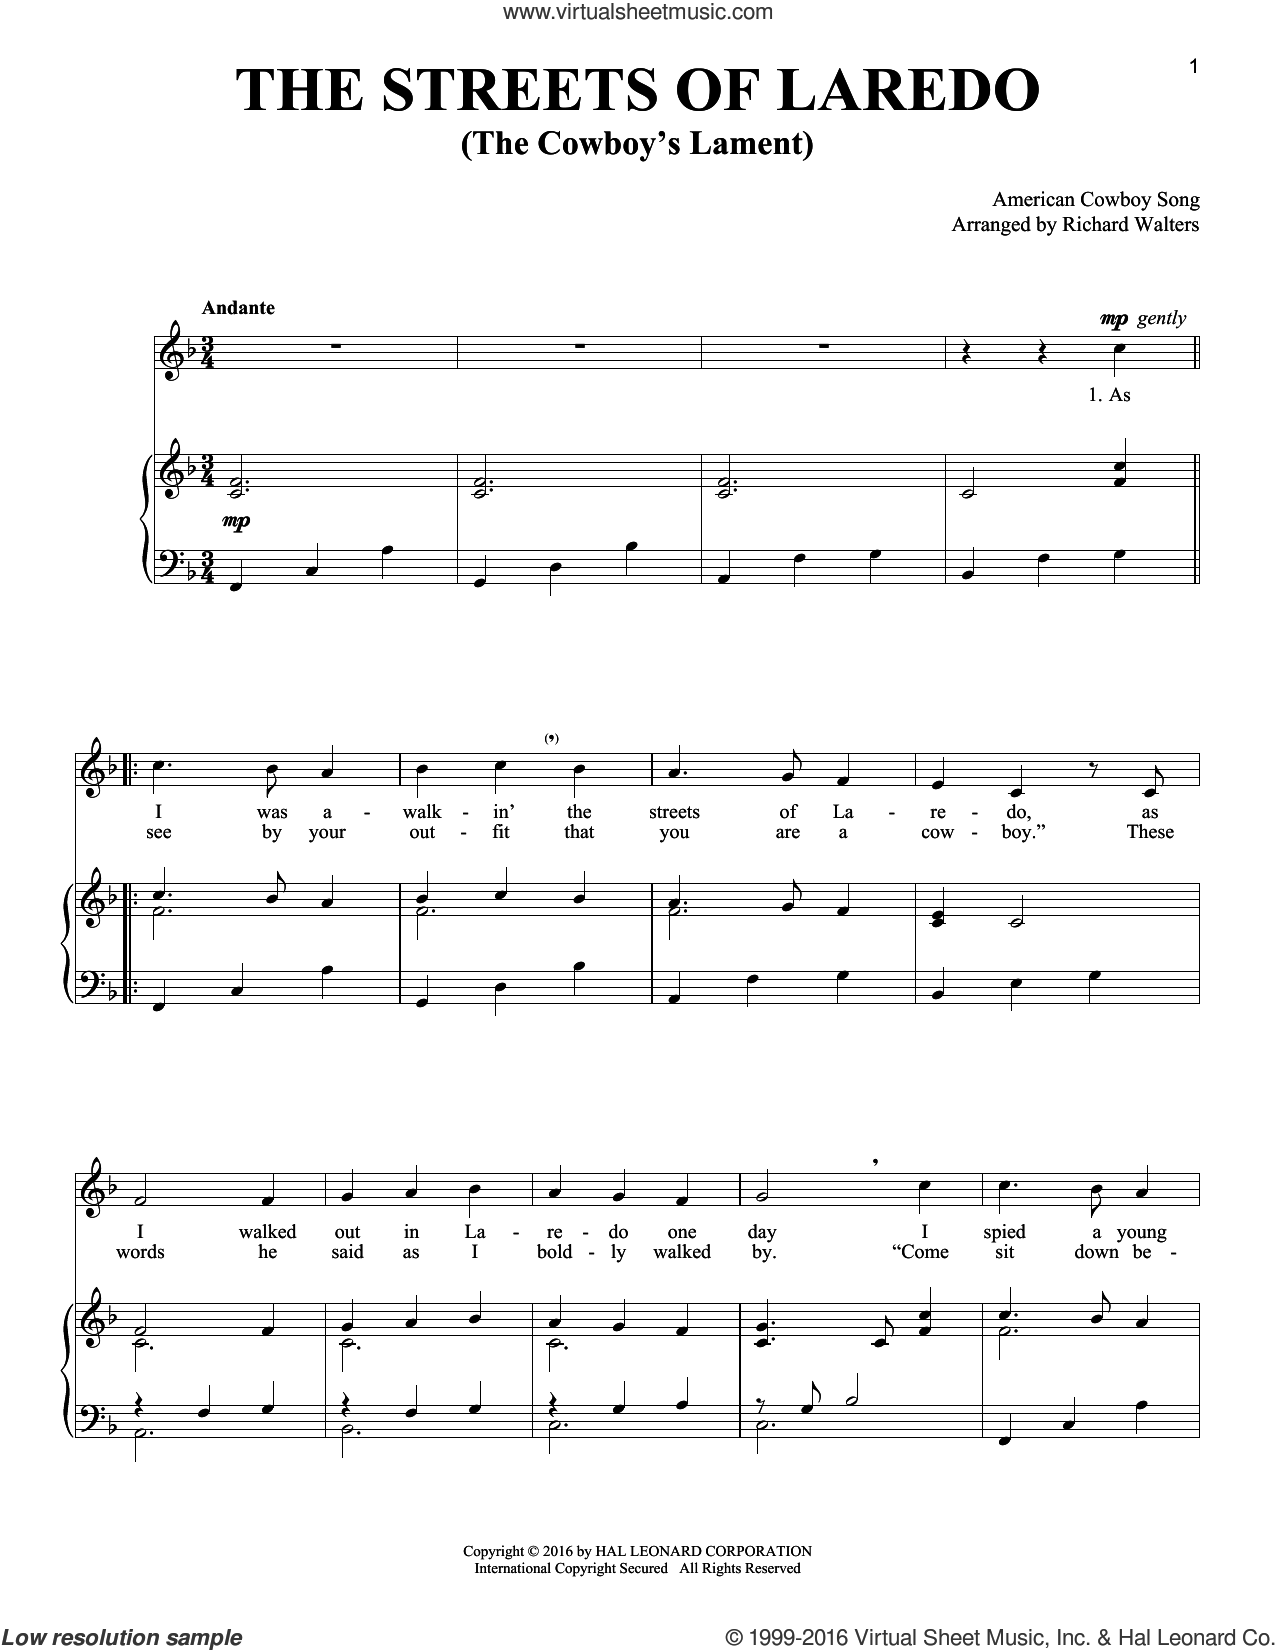 The Streets Of Laredo sheet music for voice and piano, intermediate skill level